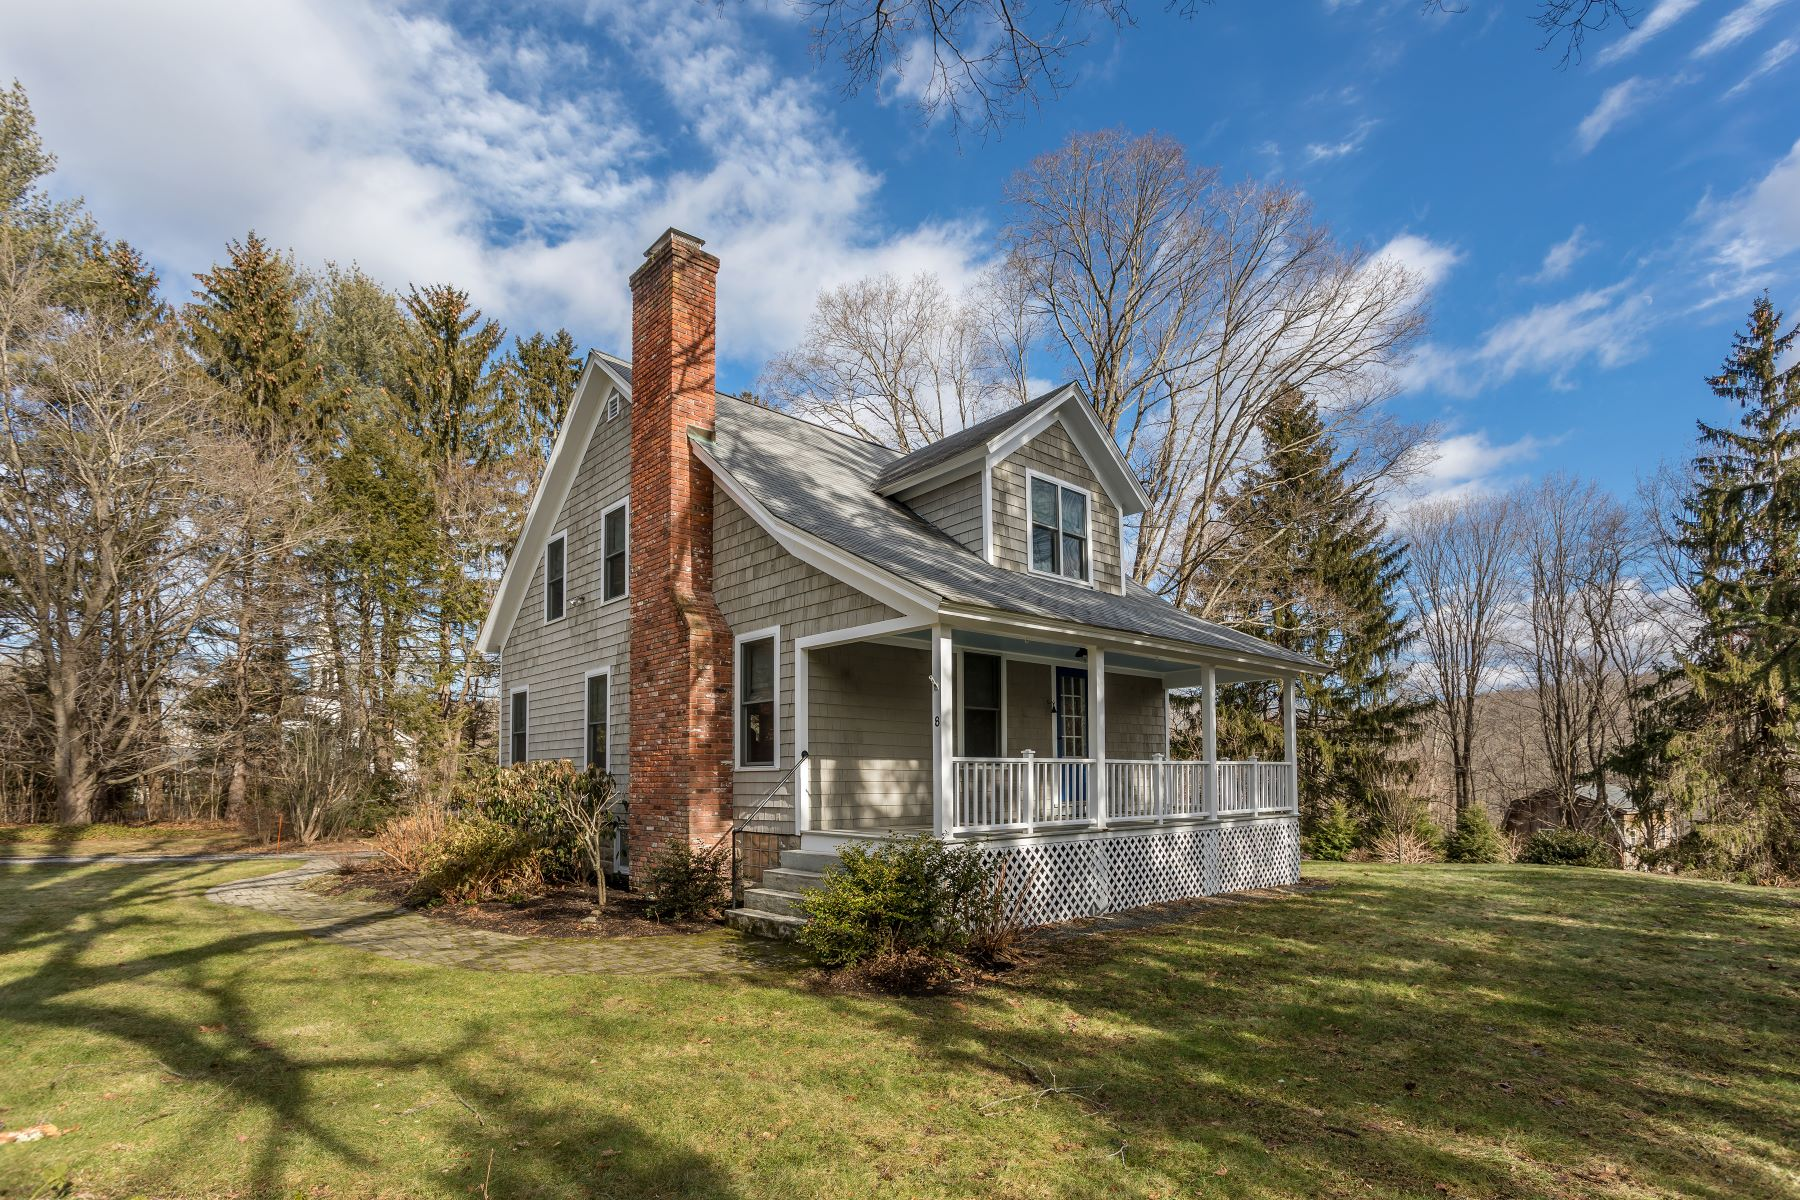 Single Family Home for Sale at Charming Village Cottage in New Preston 8 Hinckley Rd, Washington, Connecticut, 06777 United States